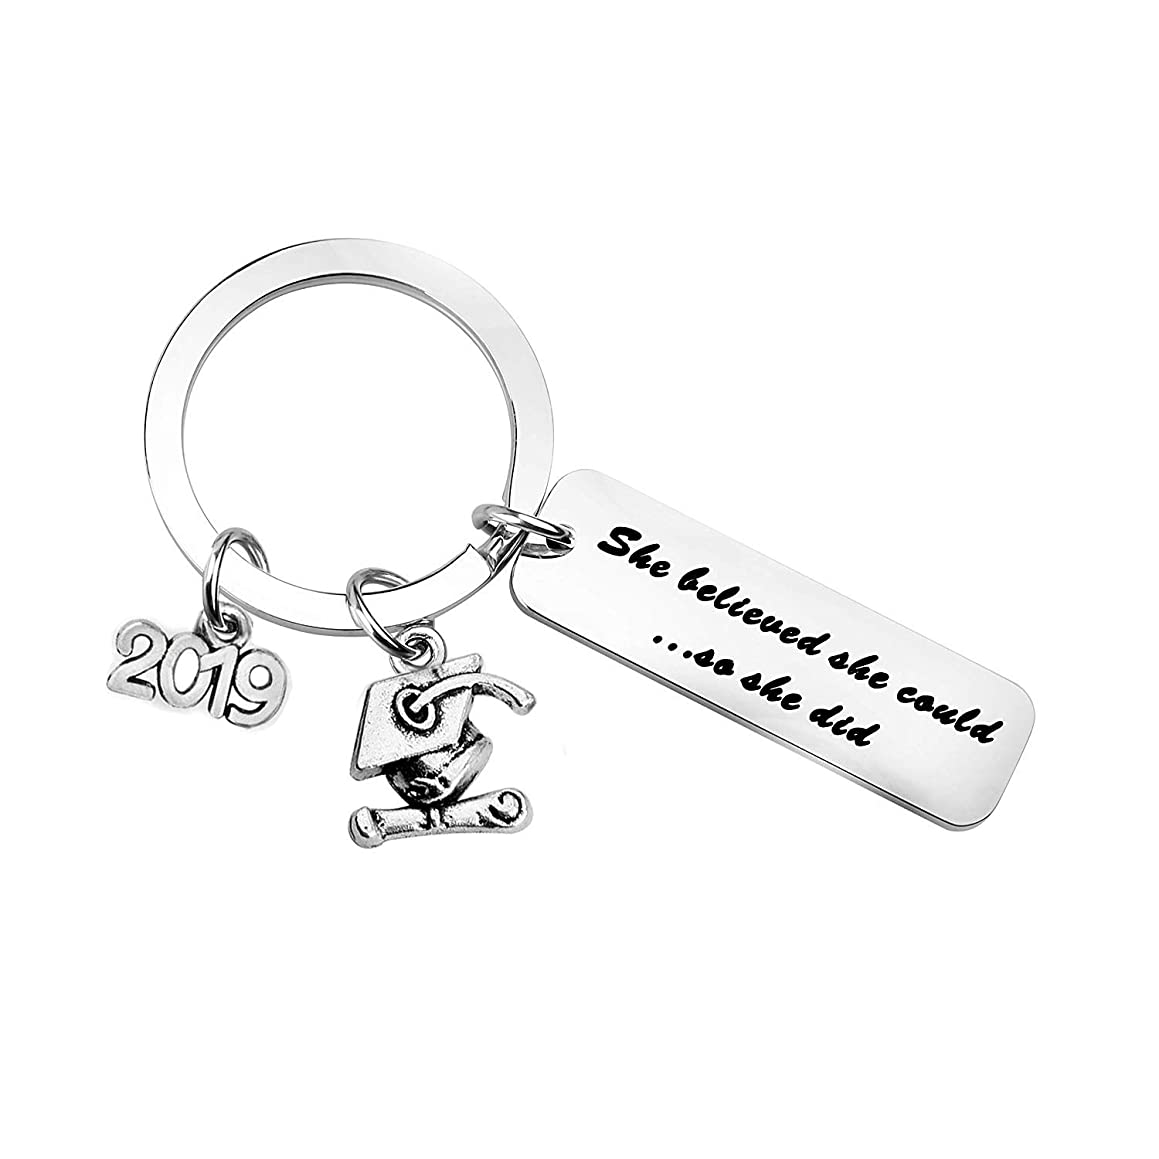 MYOSPARK 2019 Graduation Gift She Believed She Could So She Did Graduation Keychain Inspirational Gift for New Graduate